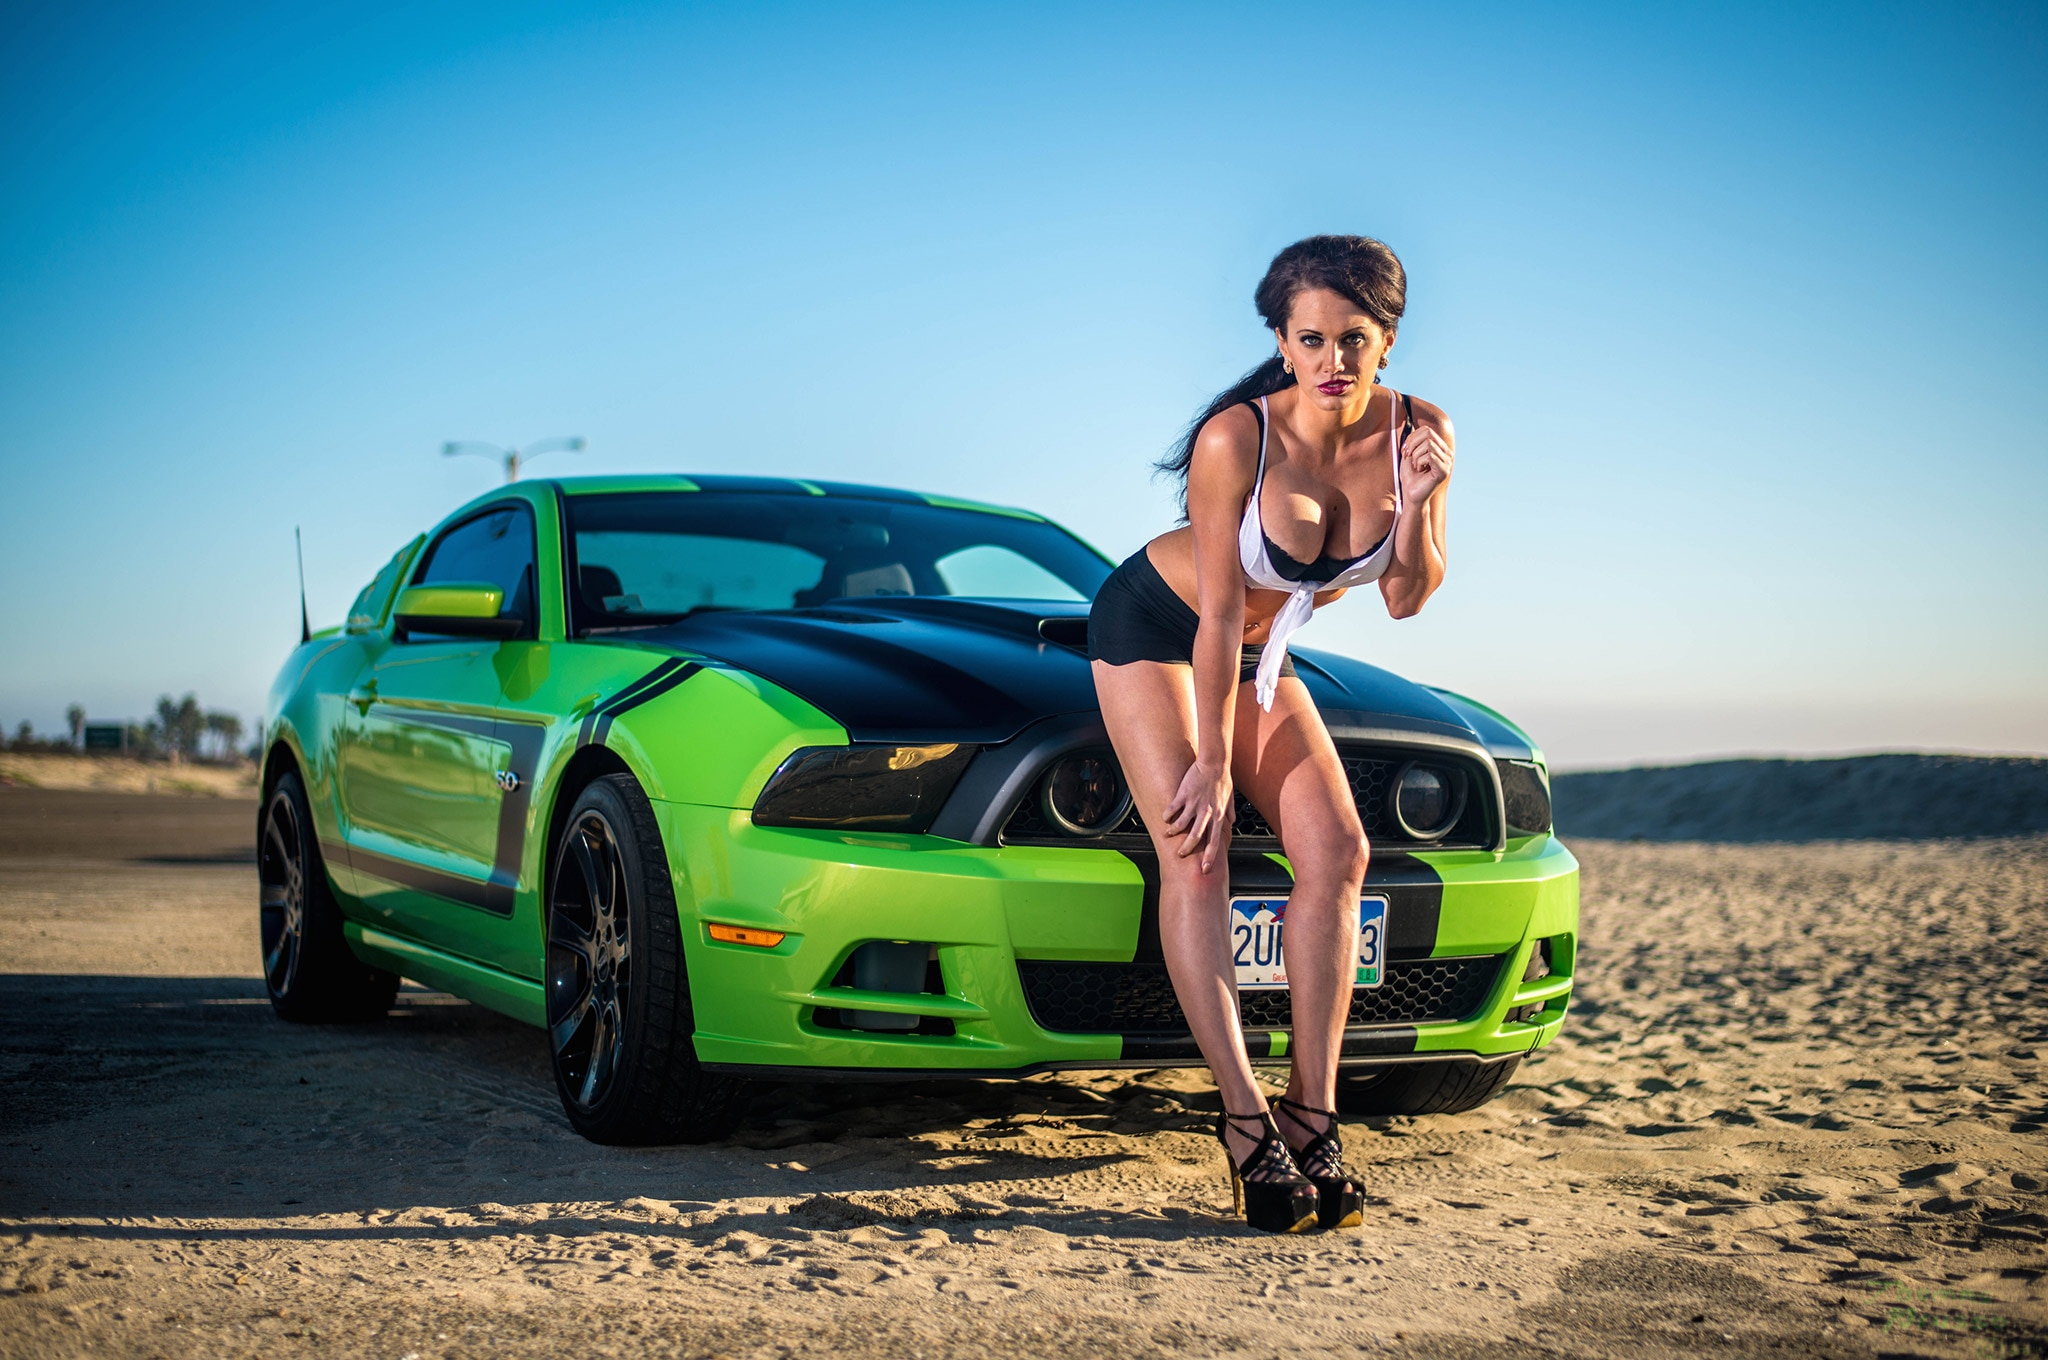 2013 Mustang Gt Devin Bagley Mustang Babe Of The Month 05